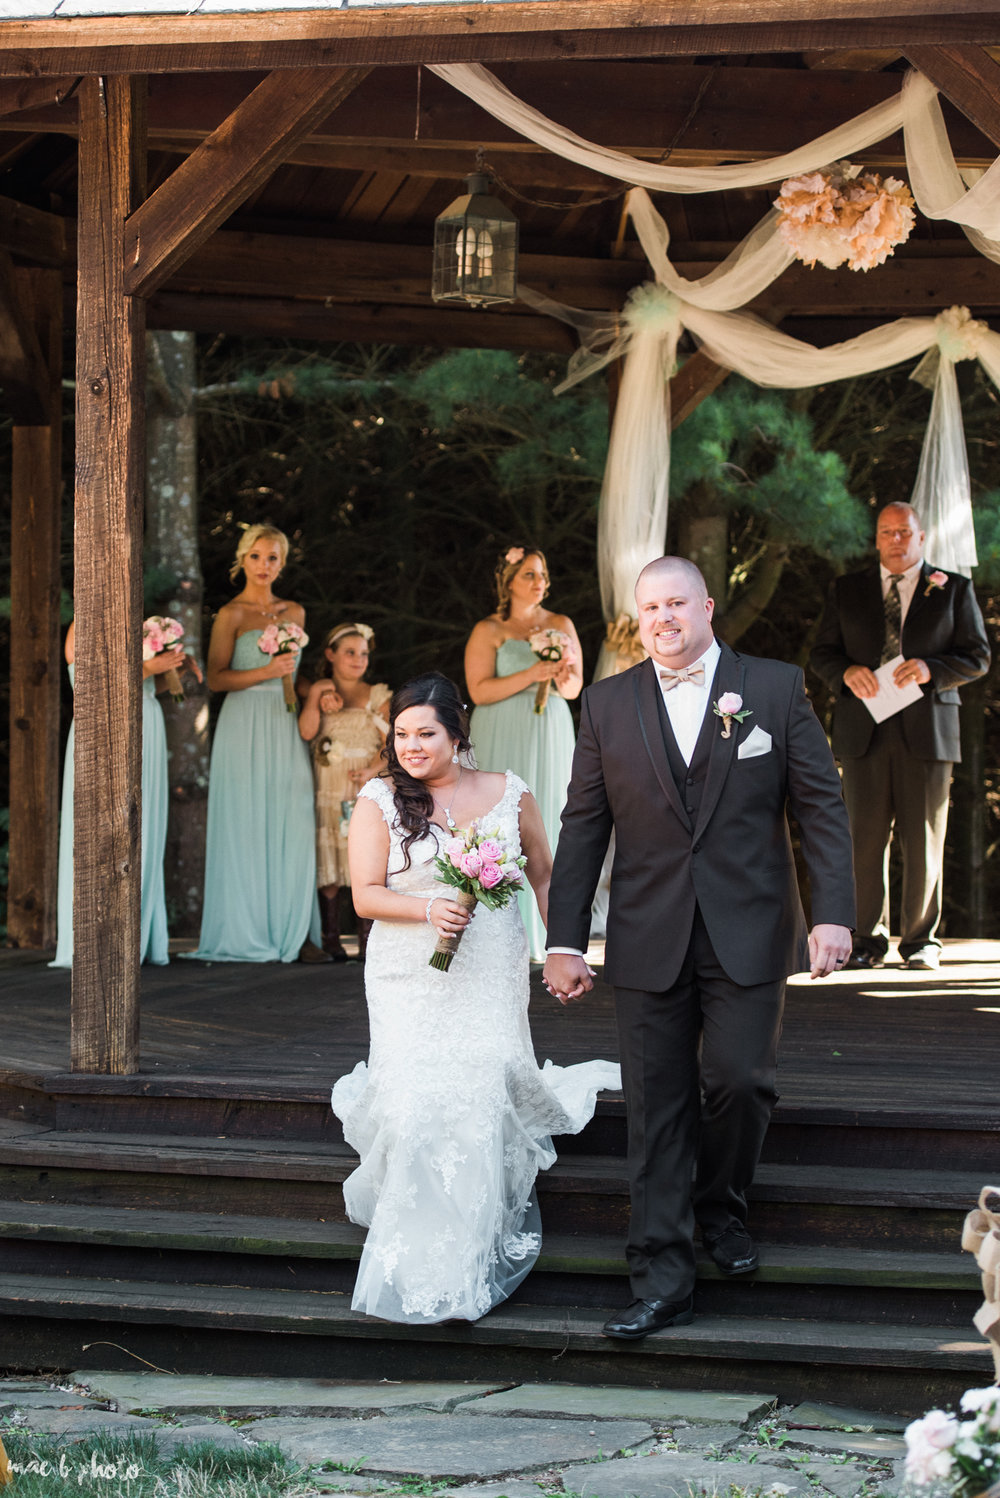 Gabby & Shane's Rustic Intimate Summer Barn Wedding at The Barn in Salem, Ohio Photographed by Mae B Photo-7.jpg